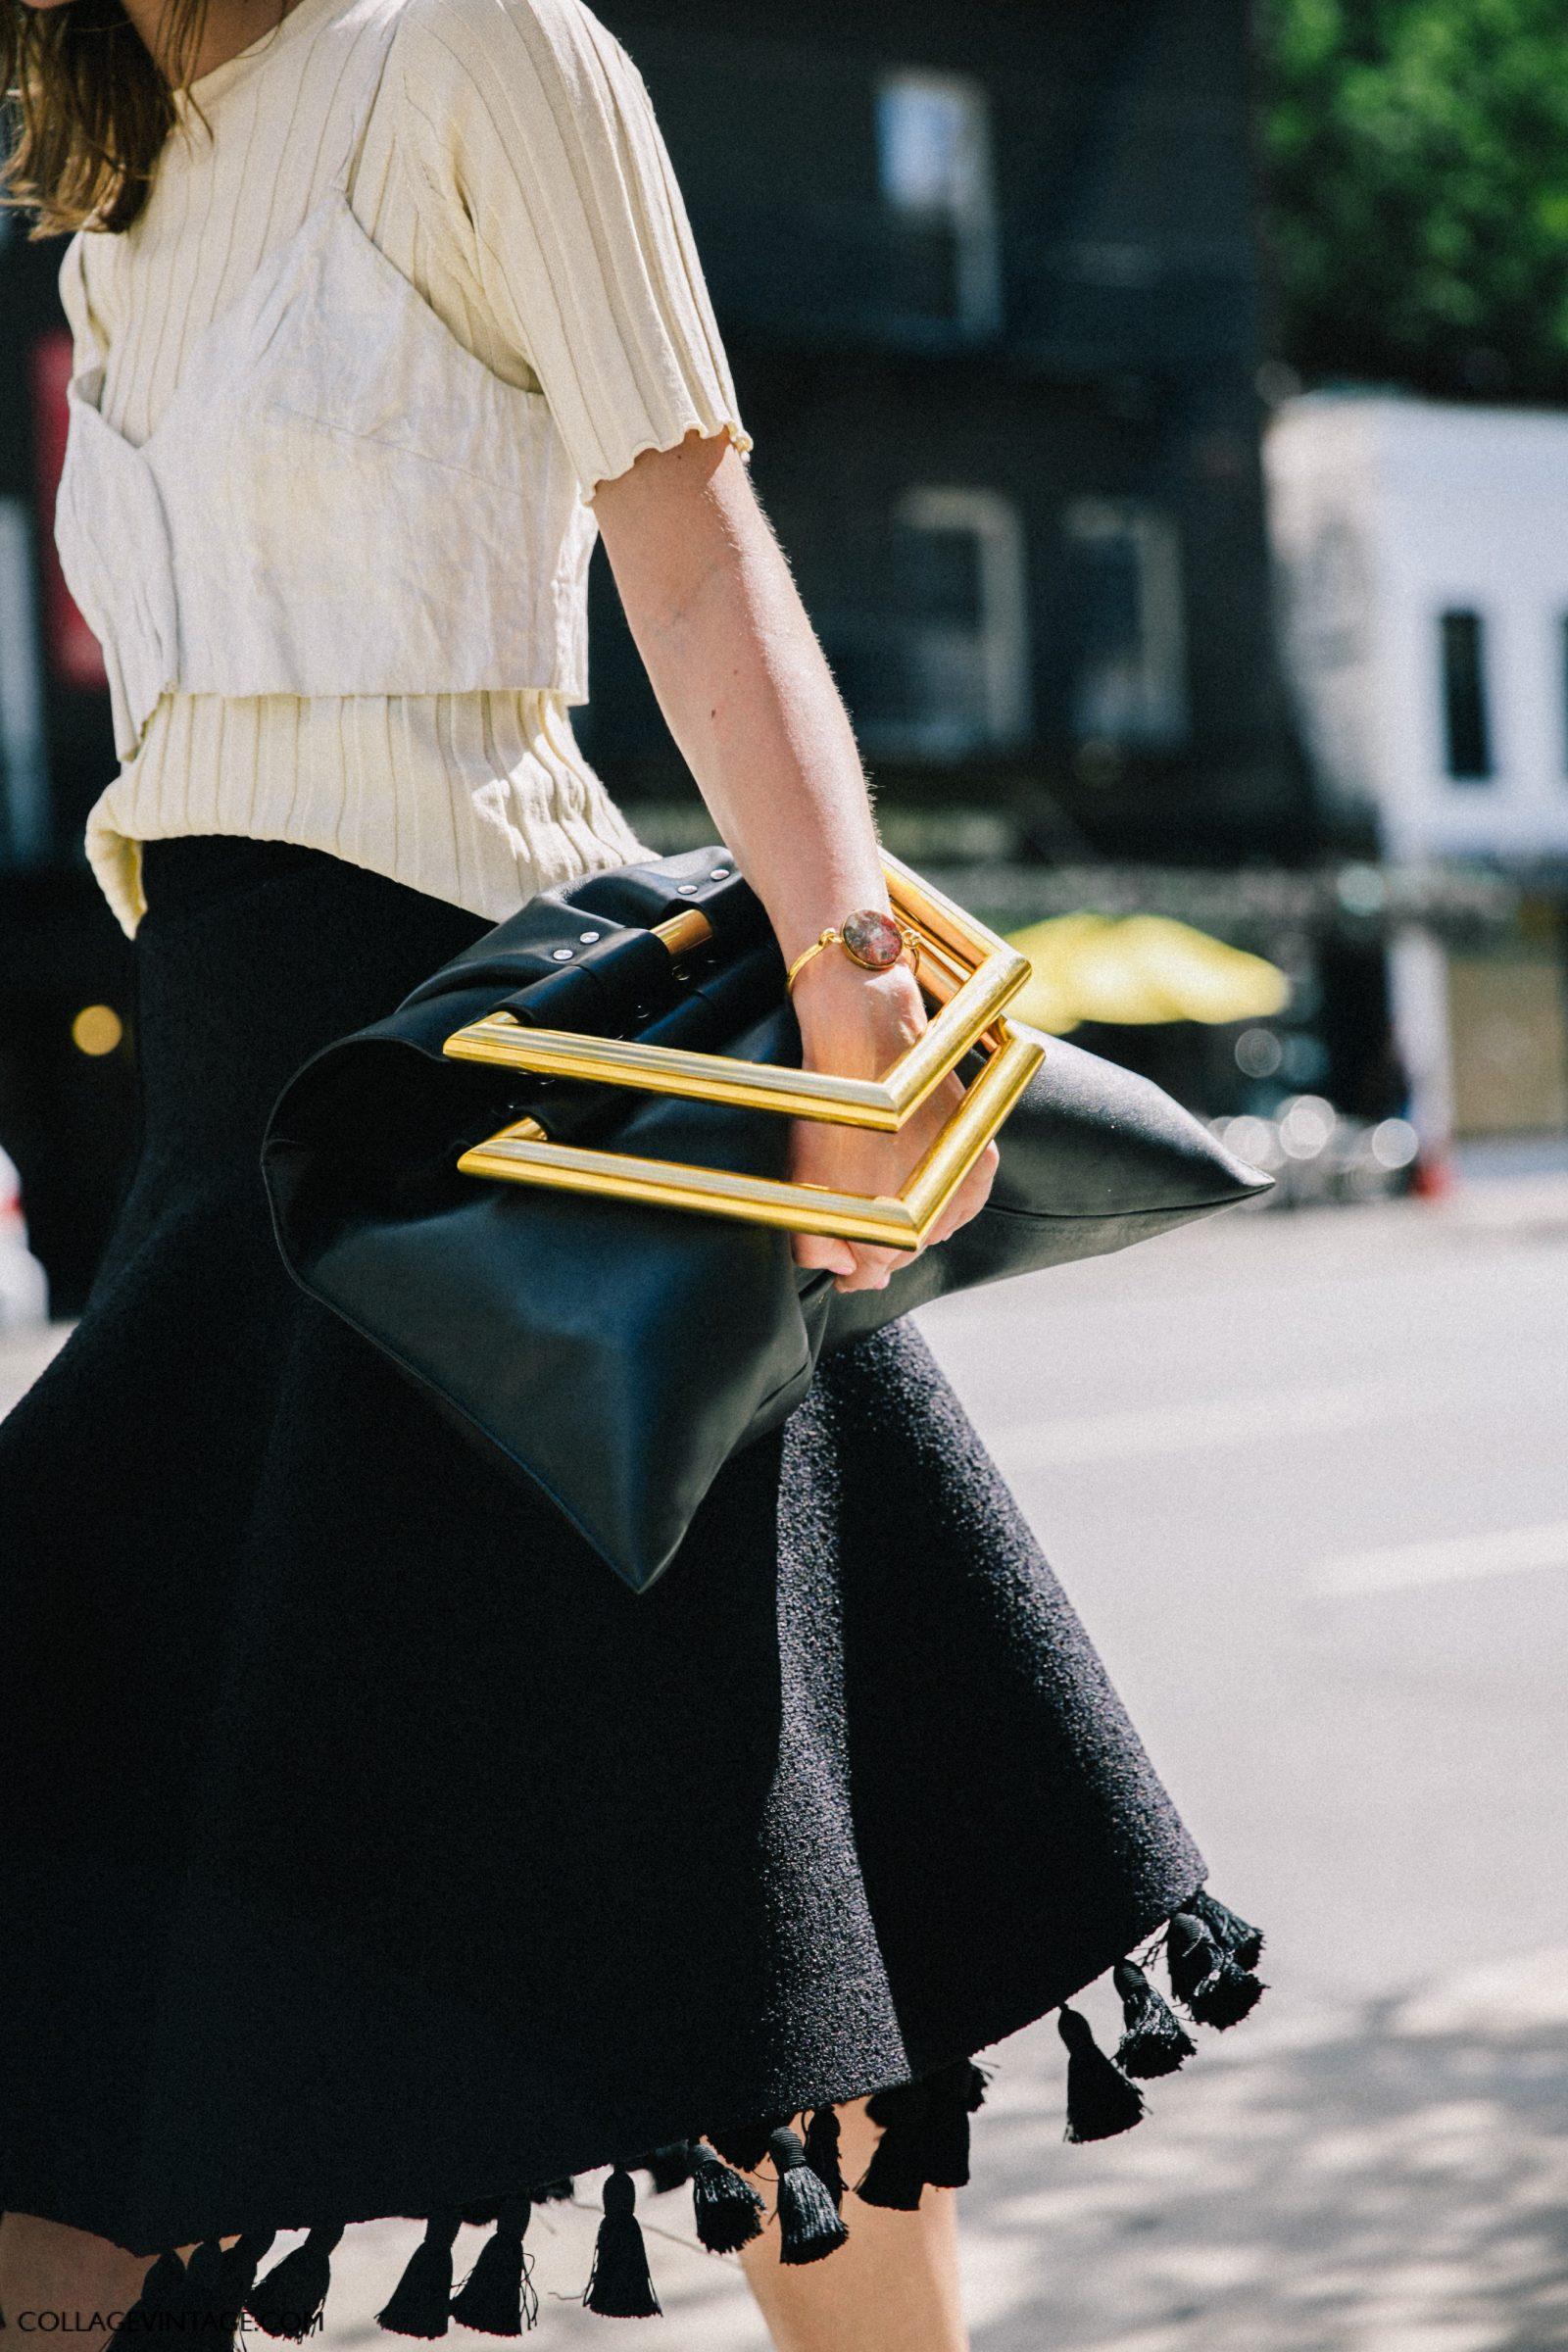 nyfw-new_york_fashion_week_ss17-street_style-outfits-collage_vintage-vintage-phillip_lim-the-row-proenza_schouler-rossie_aussolin-291